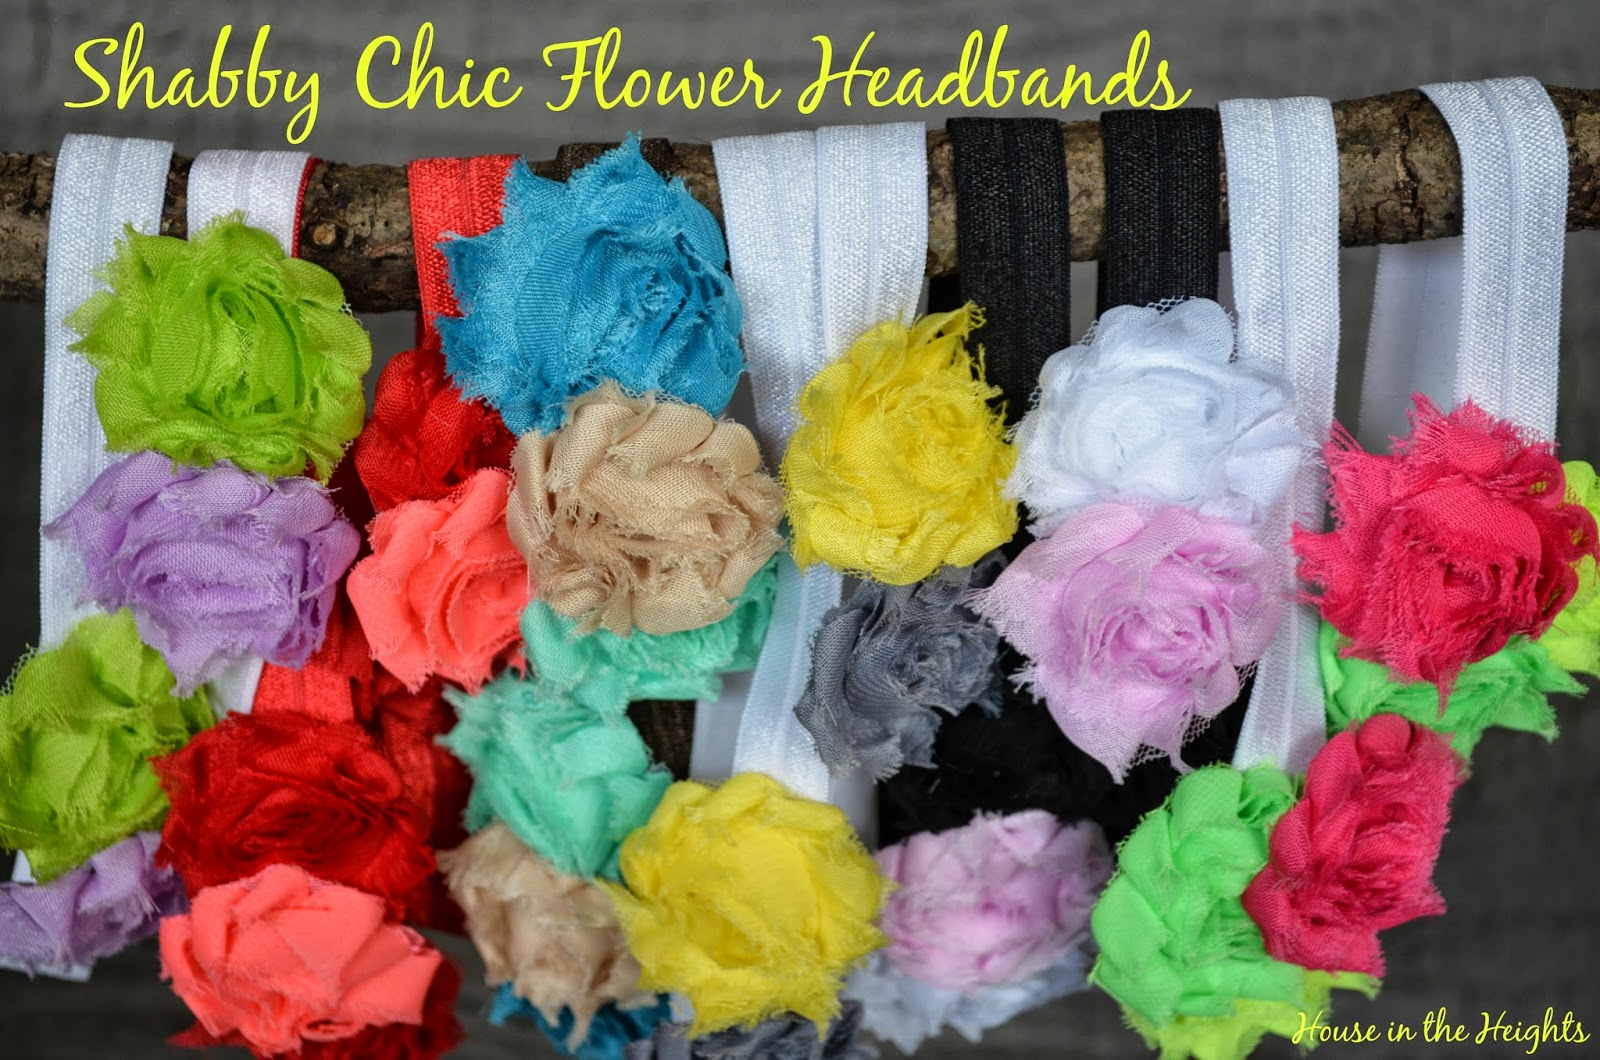 House In The Heights Shabby Chic Flower Headbands